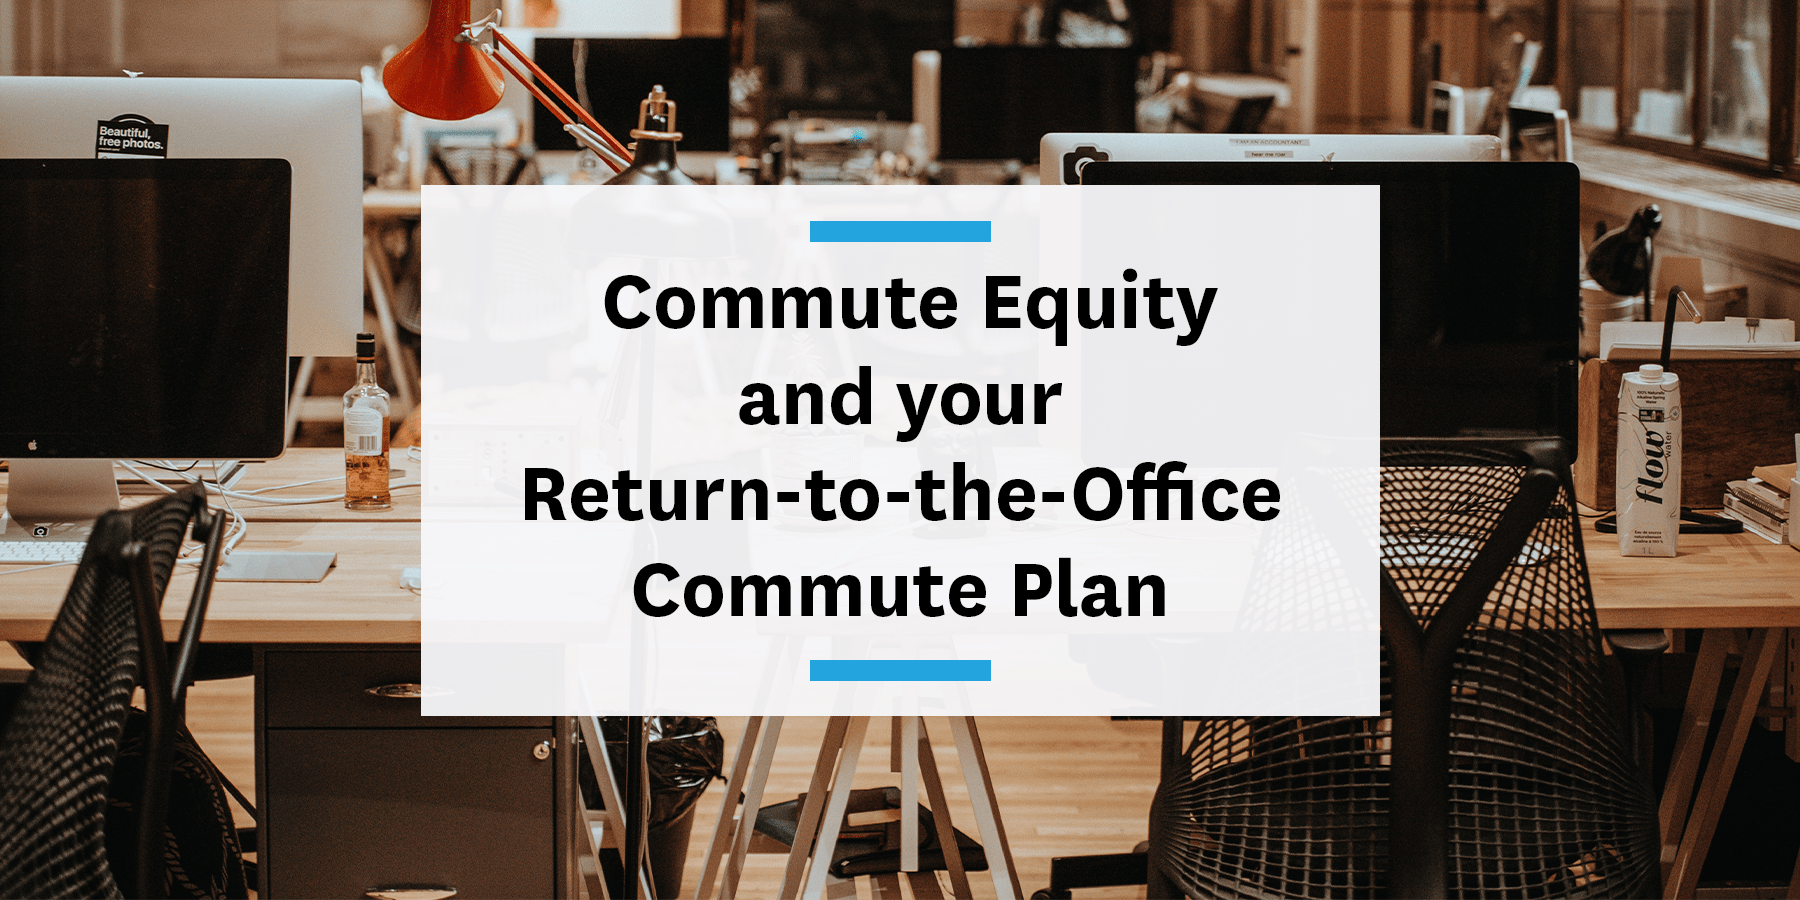 Feature image for commute equity in return-to-the-office commute plans